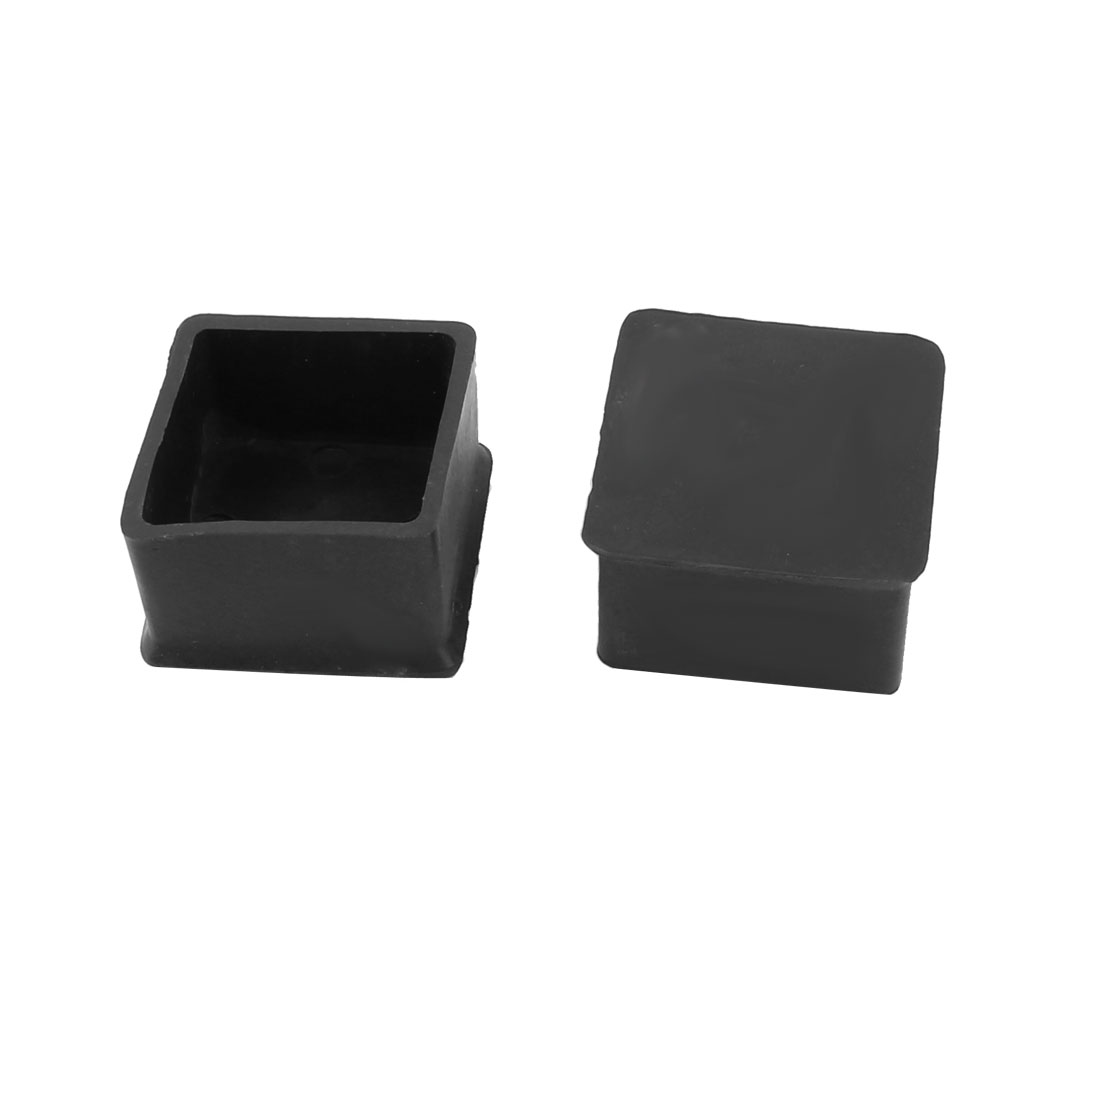 Furniture Desk Chair Rubber Square Shape Foot Legs Protector Cover Pad Black 2pcs